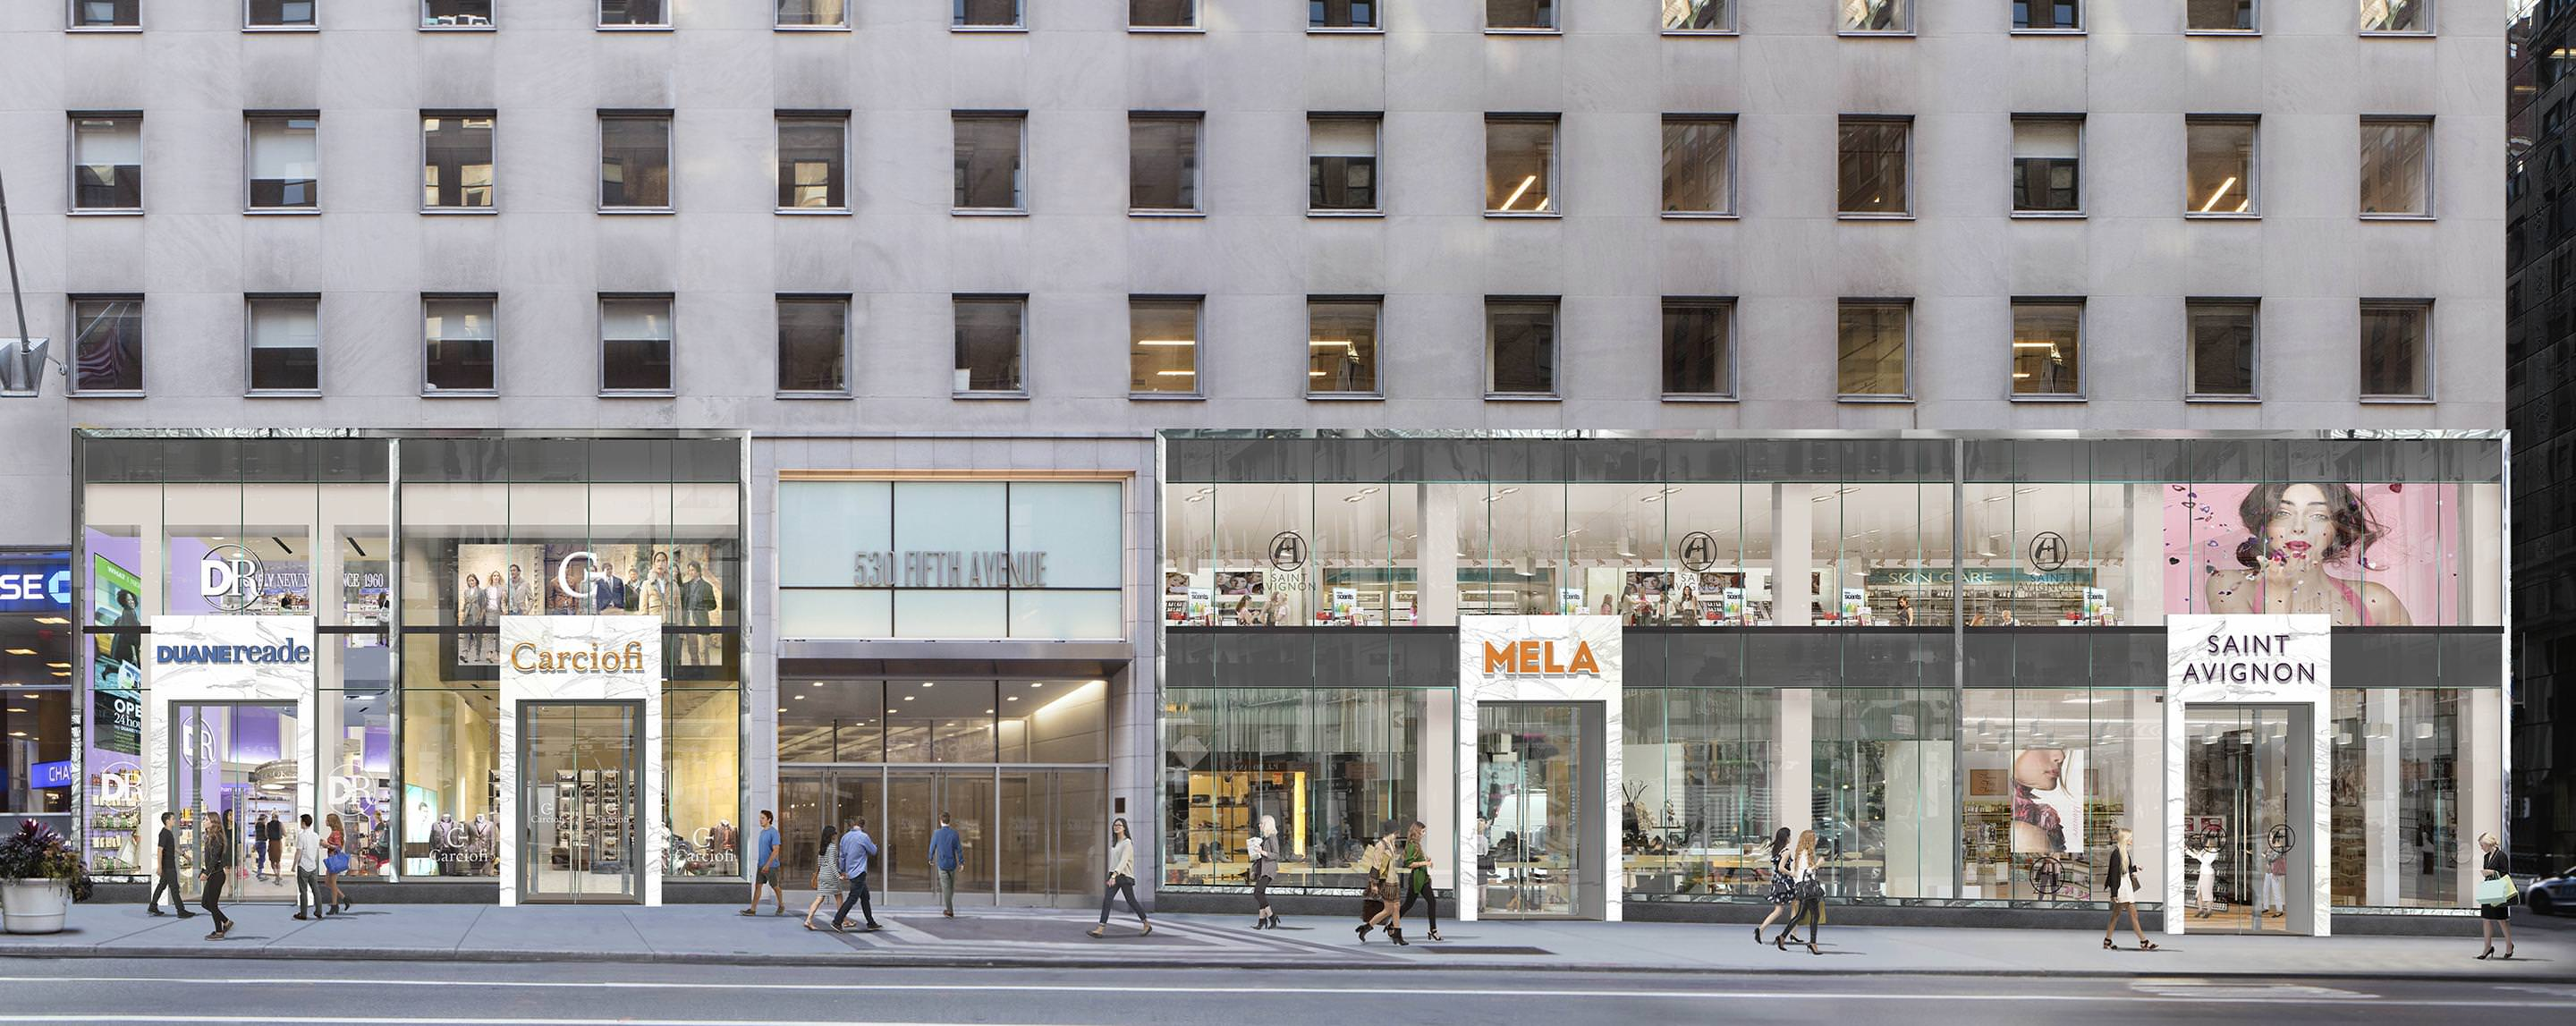 People walk on the sidewalk outside of the building housing stores such as Saint Avignon and Mela.